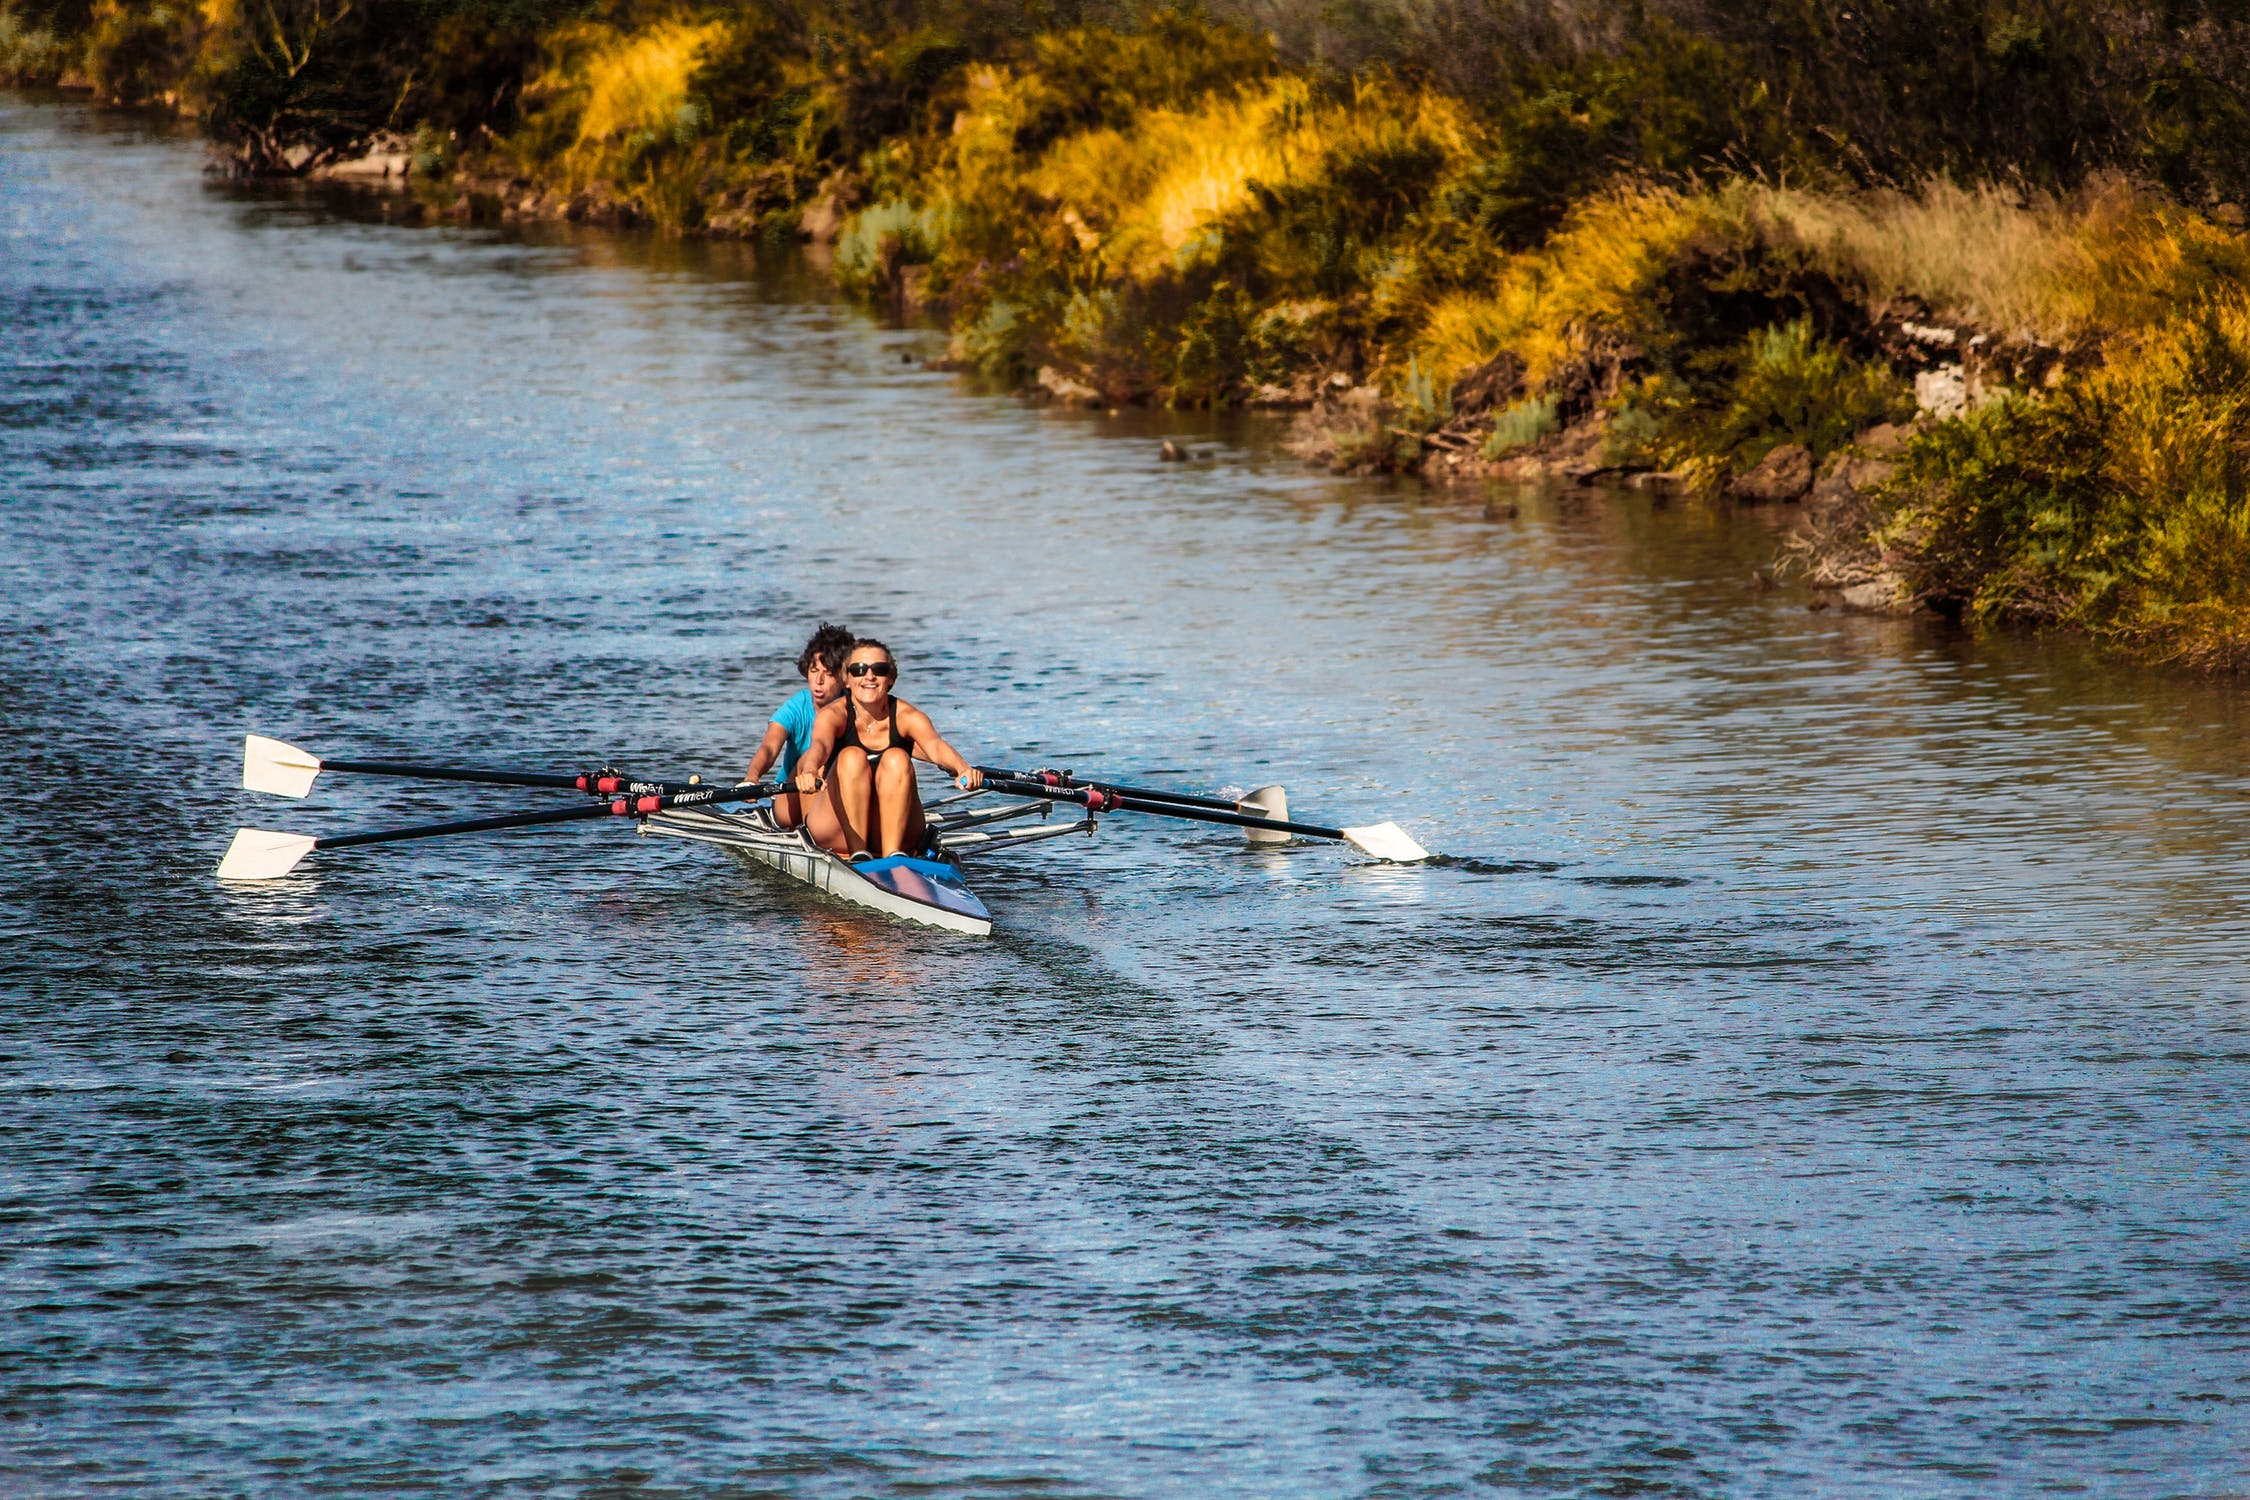 The Oxford-Cambridge boat race: looking at typical rowing injuries